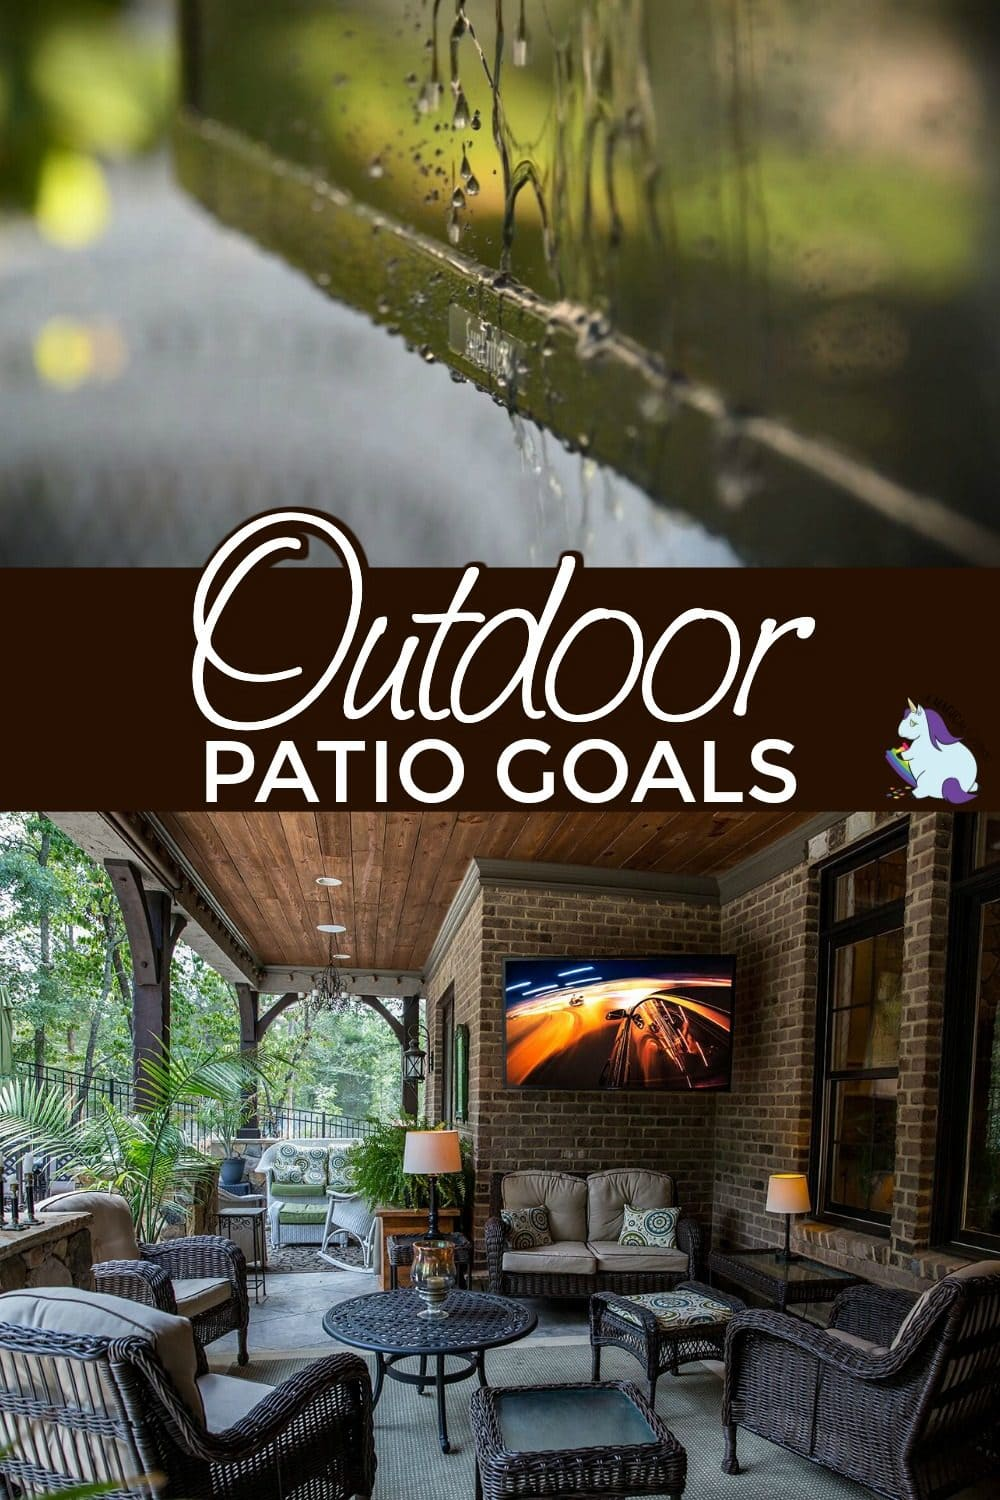 Picture of an outdoor TV and a nice patio area.